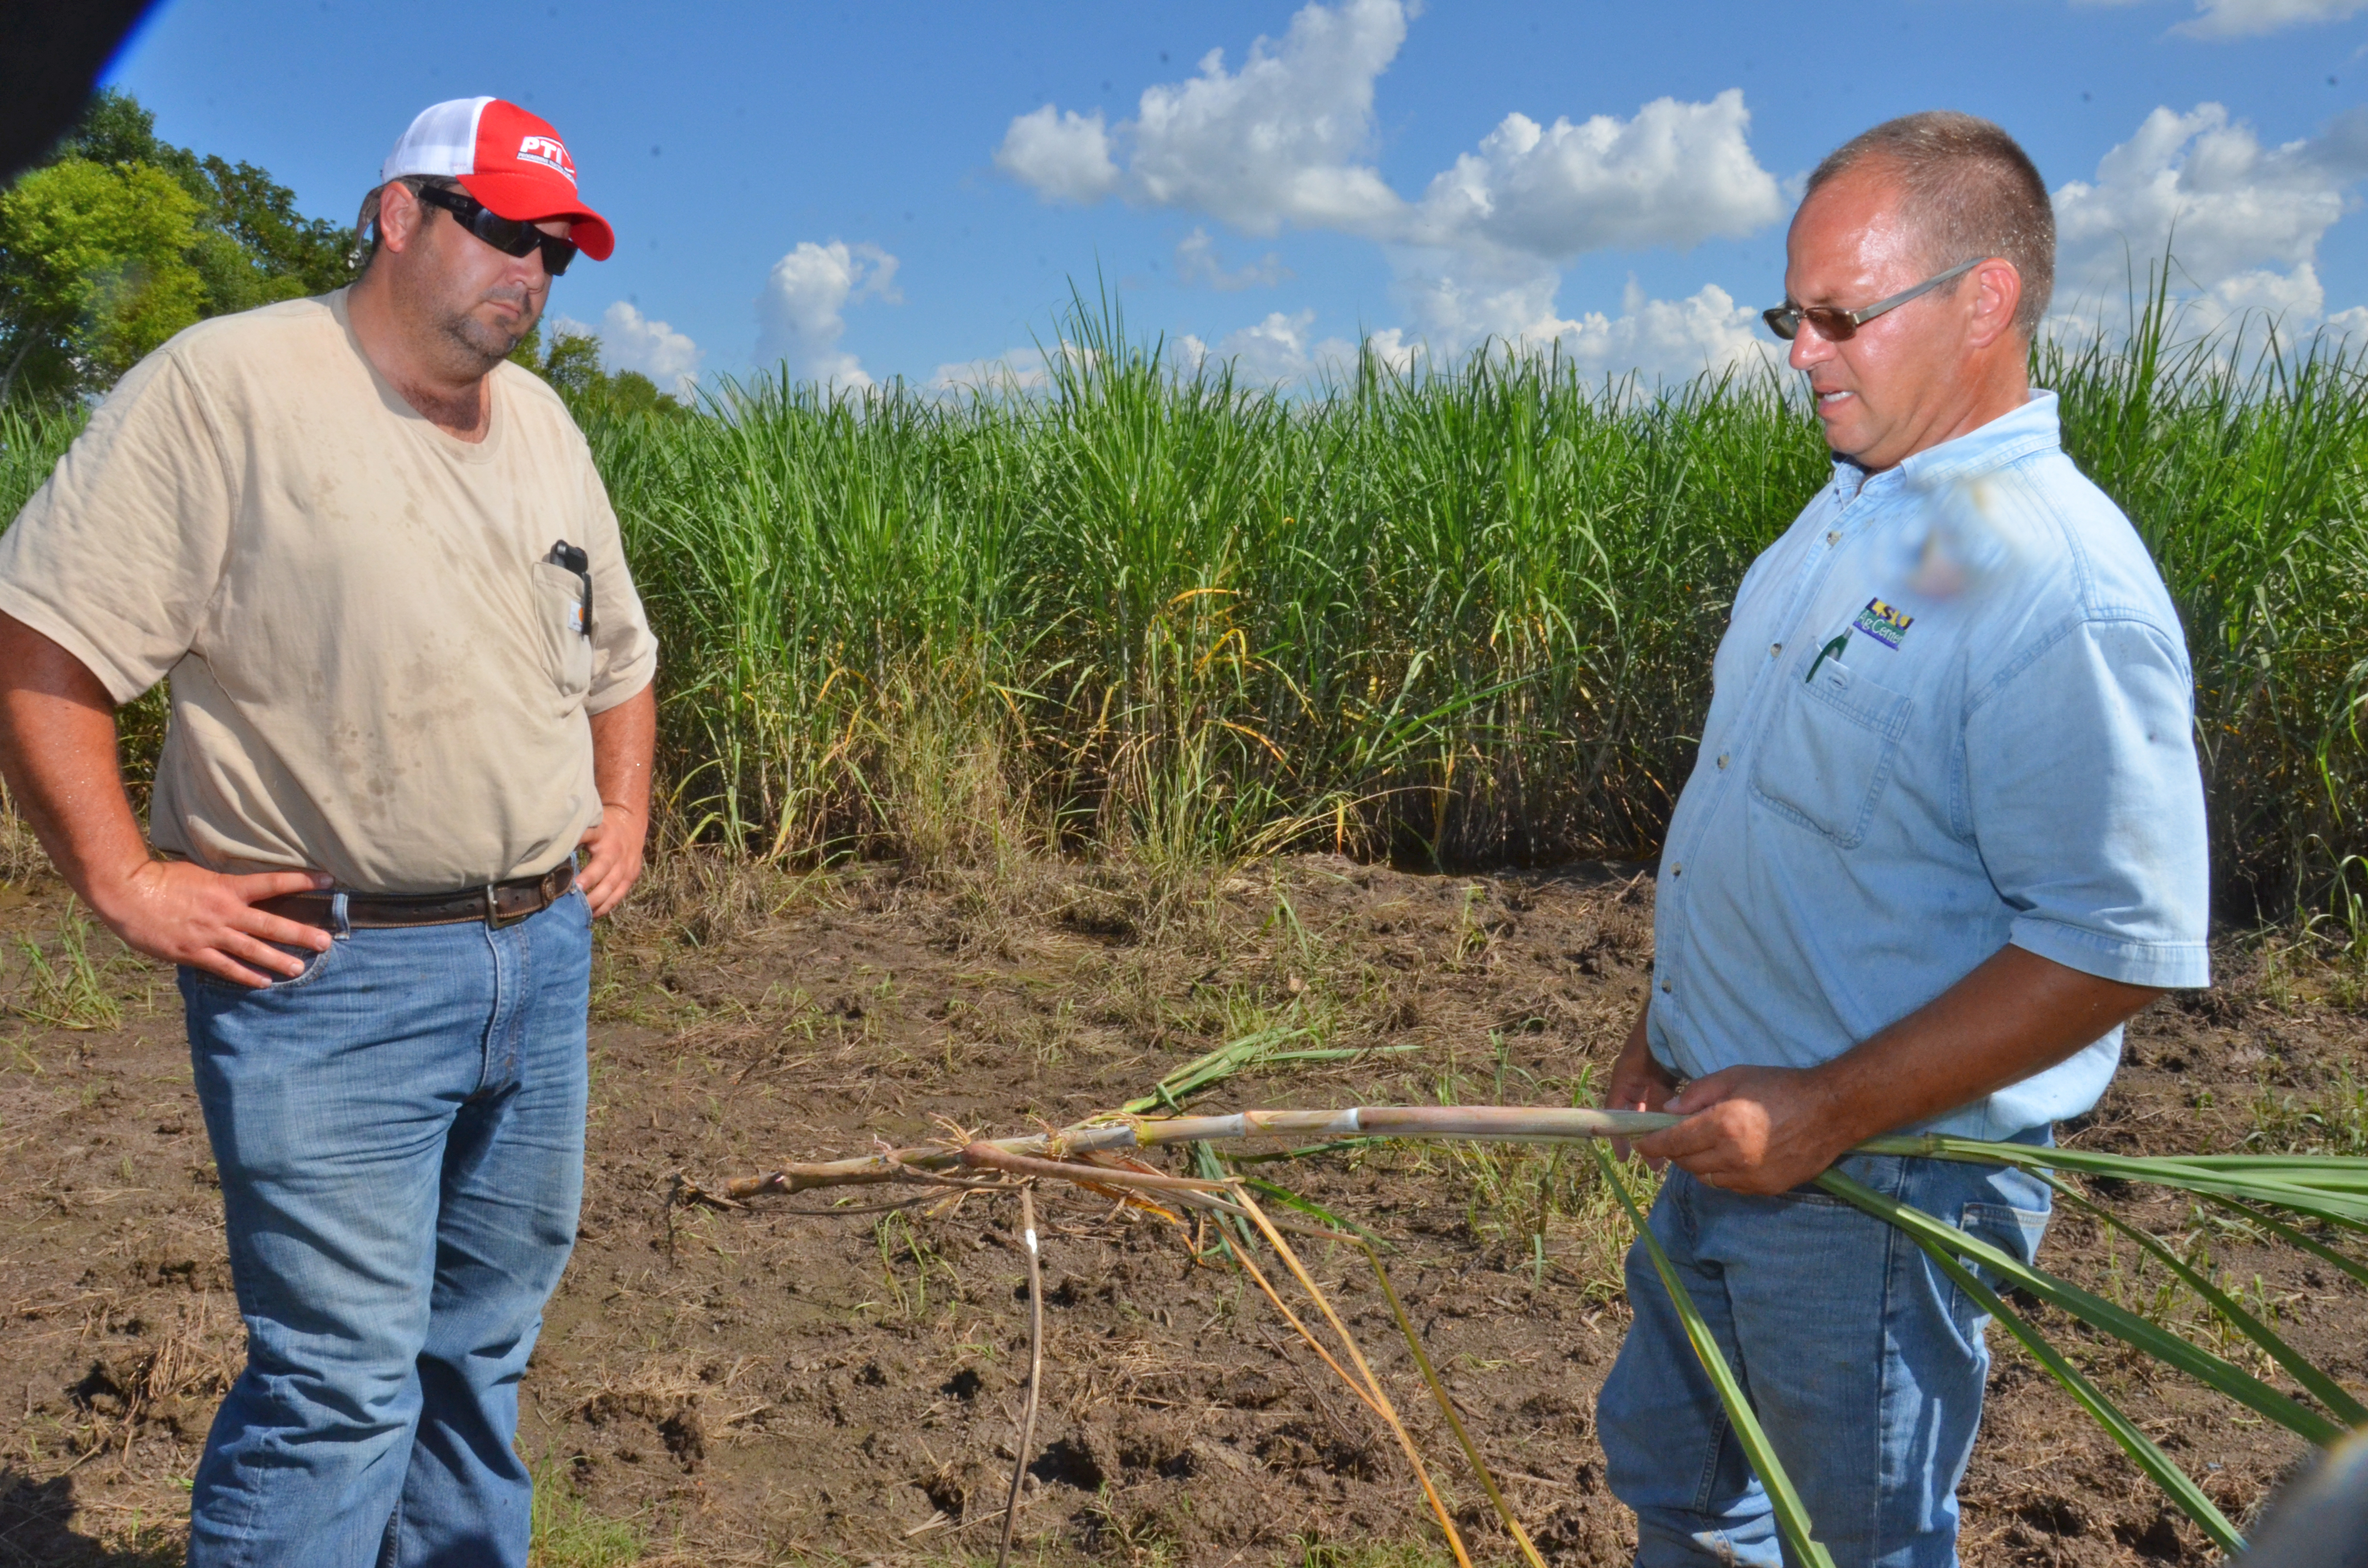 Sugarcane producers anxious to finish planting